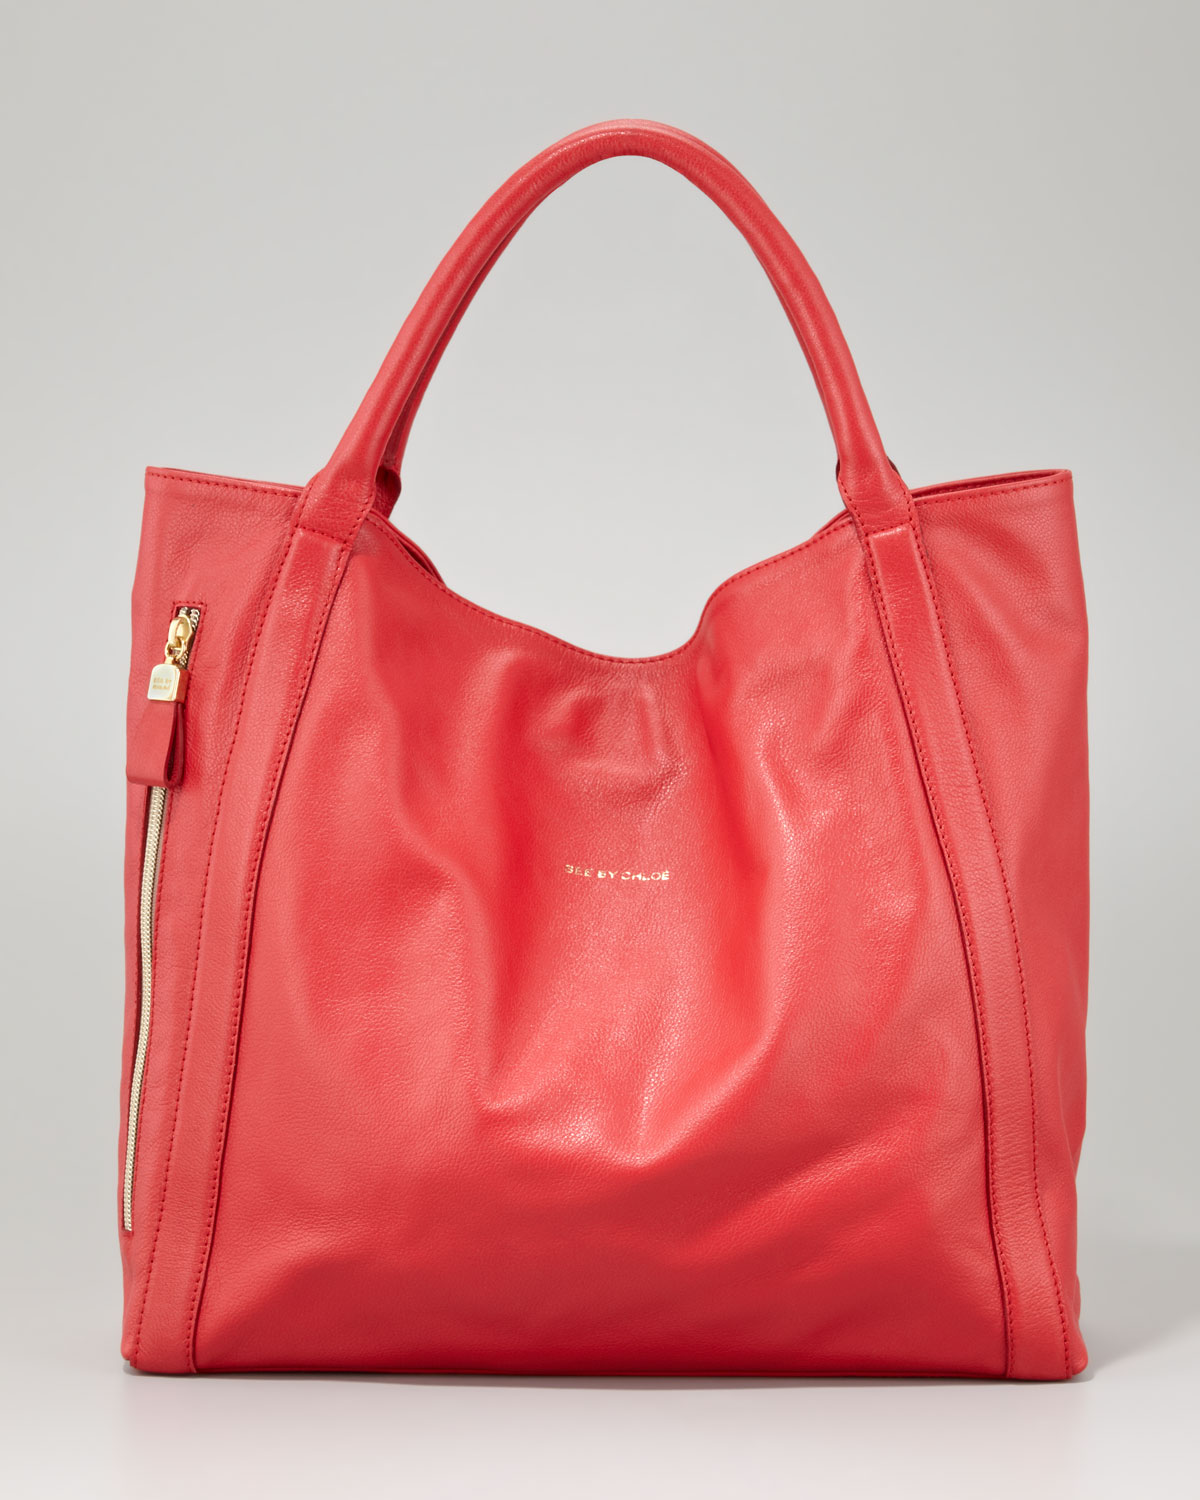 See by chloé Harriet Leather Tote Bag in Red | Lyst